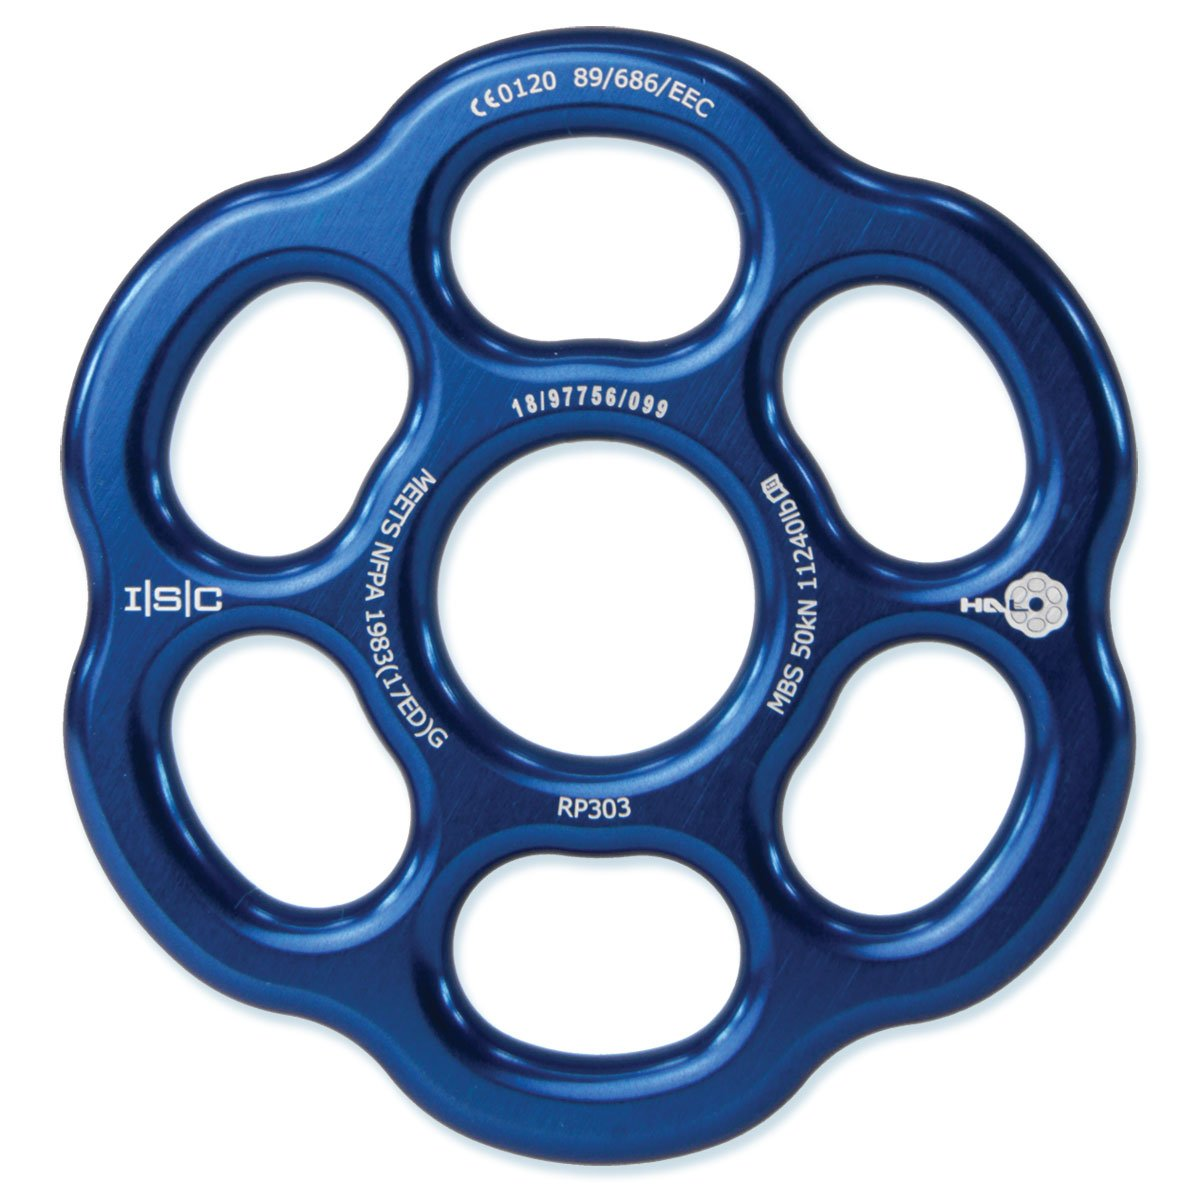 ISC Halo Rigging Plate - Medium - 50 kN by ISC